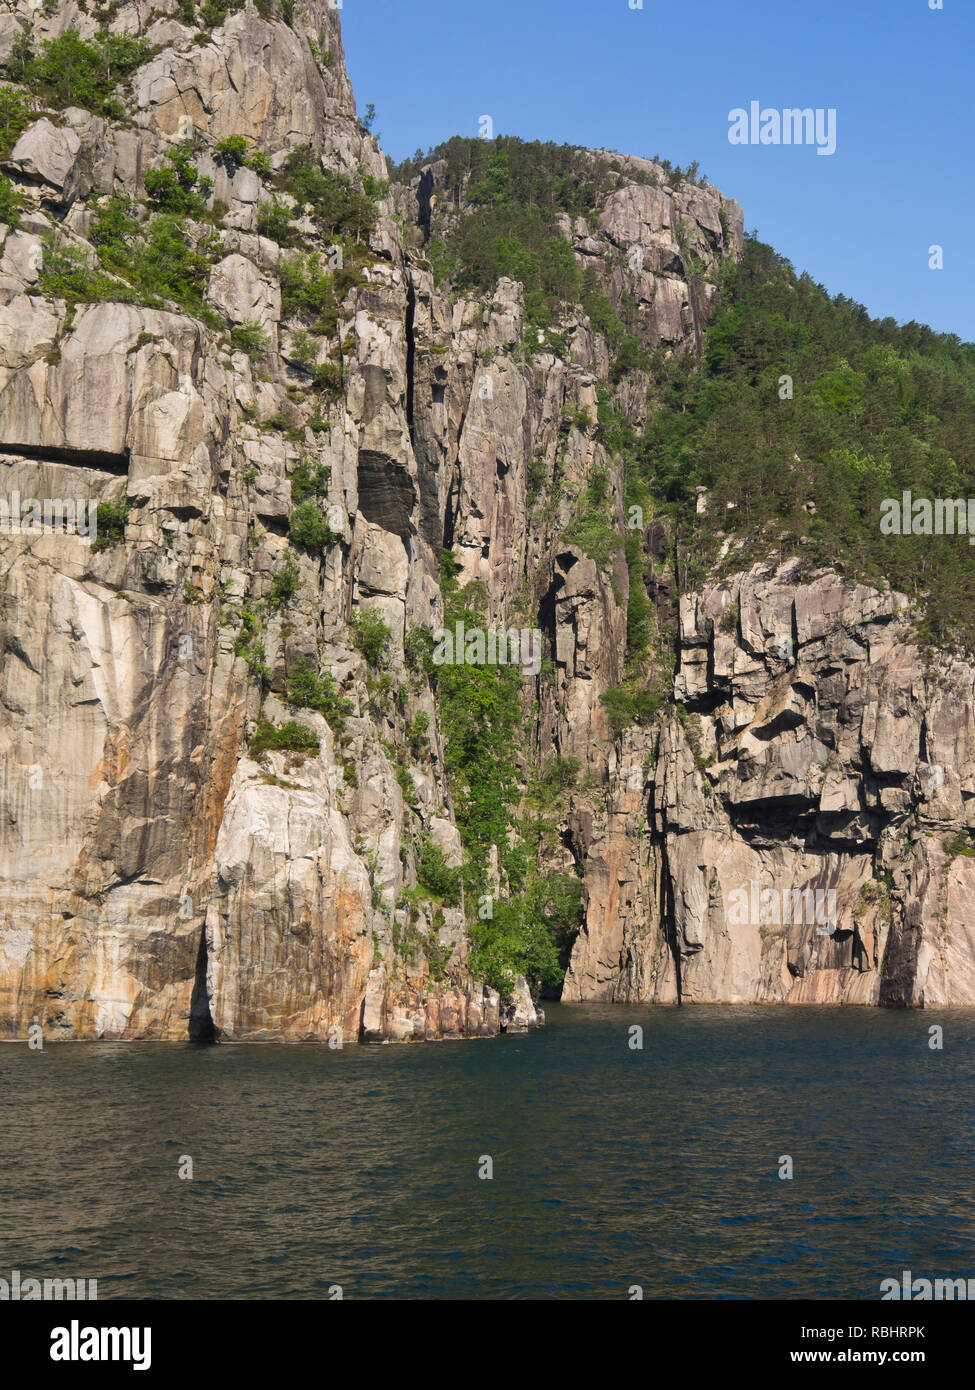 A one day fjord cruise in Lysefjorden east of Stavanger Norway, daring trees and steep and rugged mountainsides straight into the fjord - Stock Image